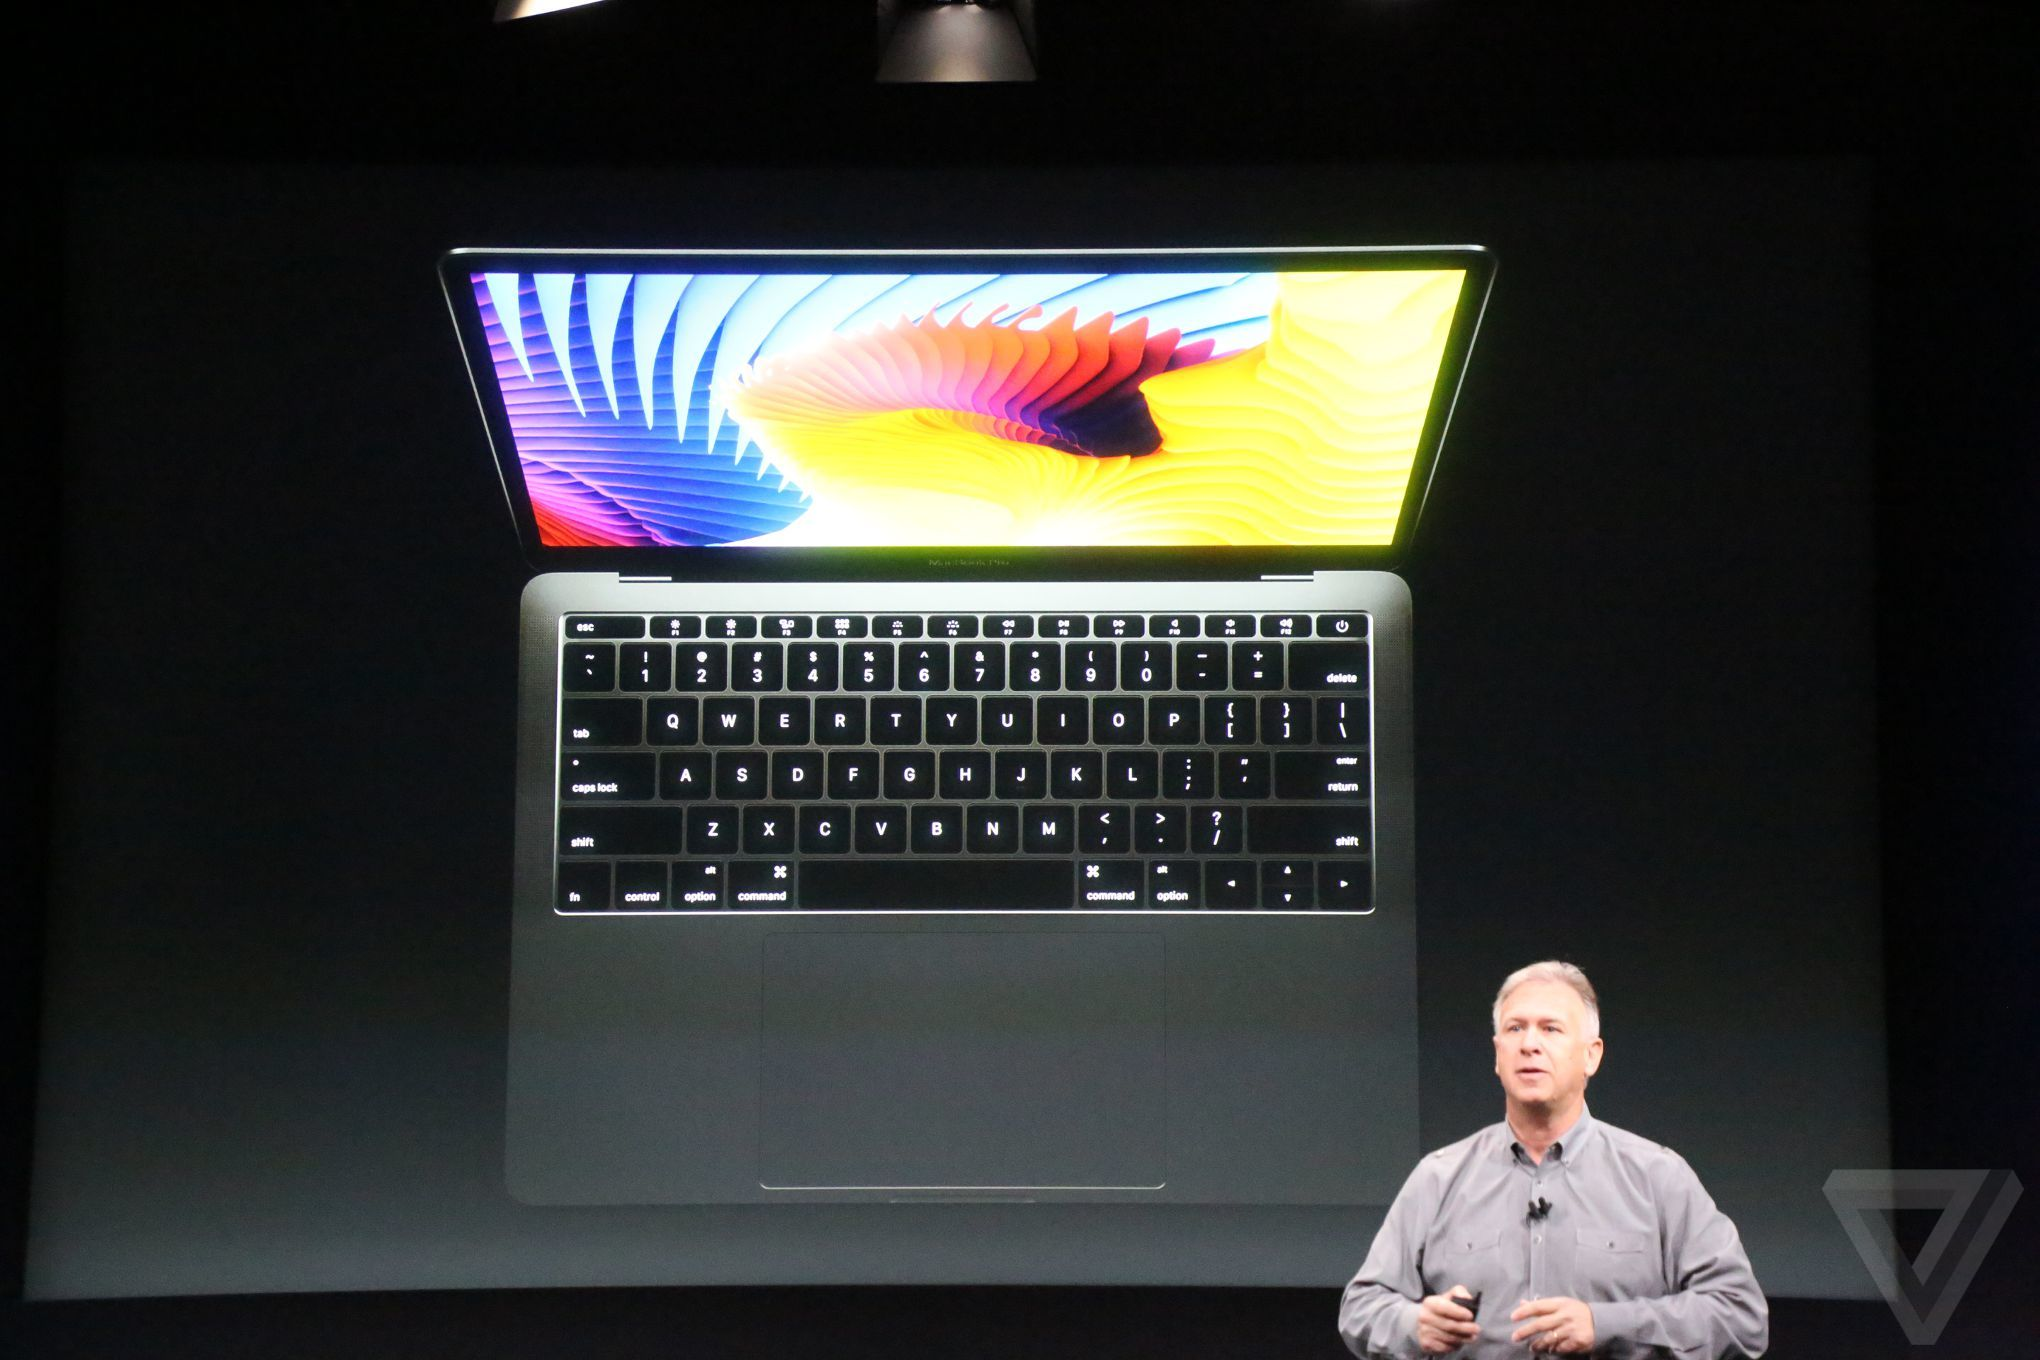 How To Write An Essay On Macbook Air